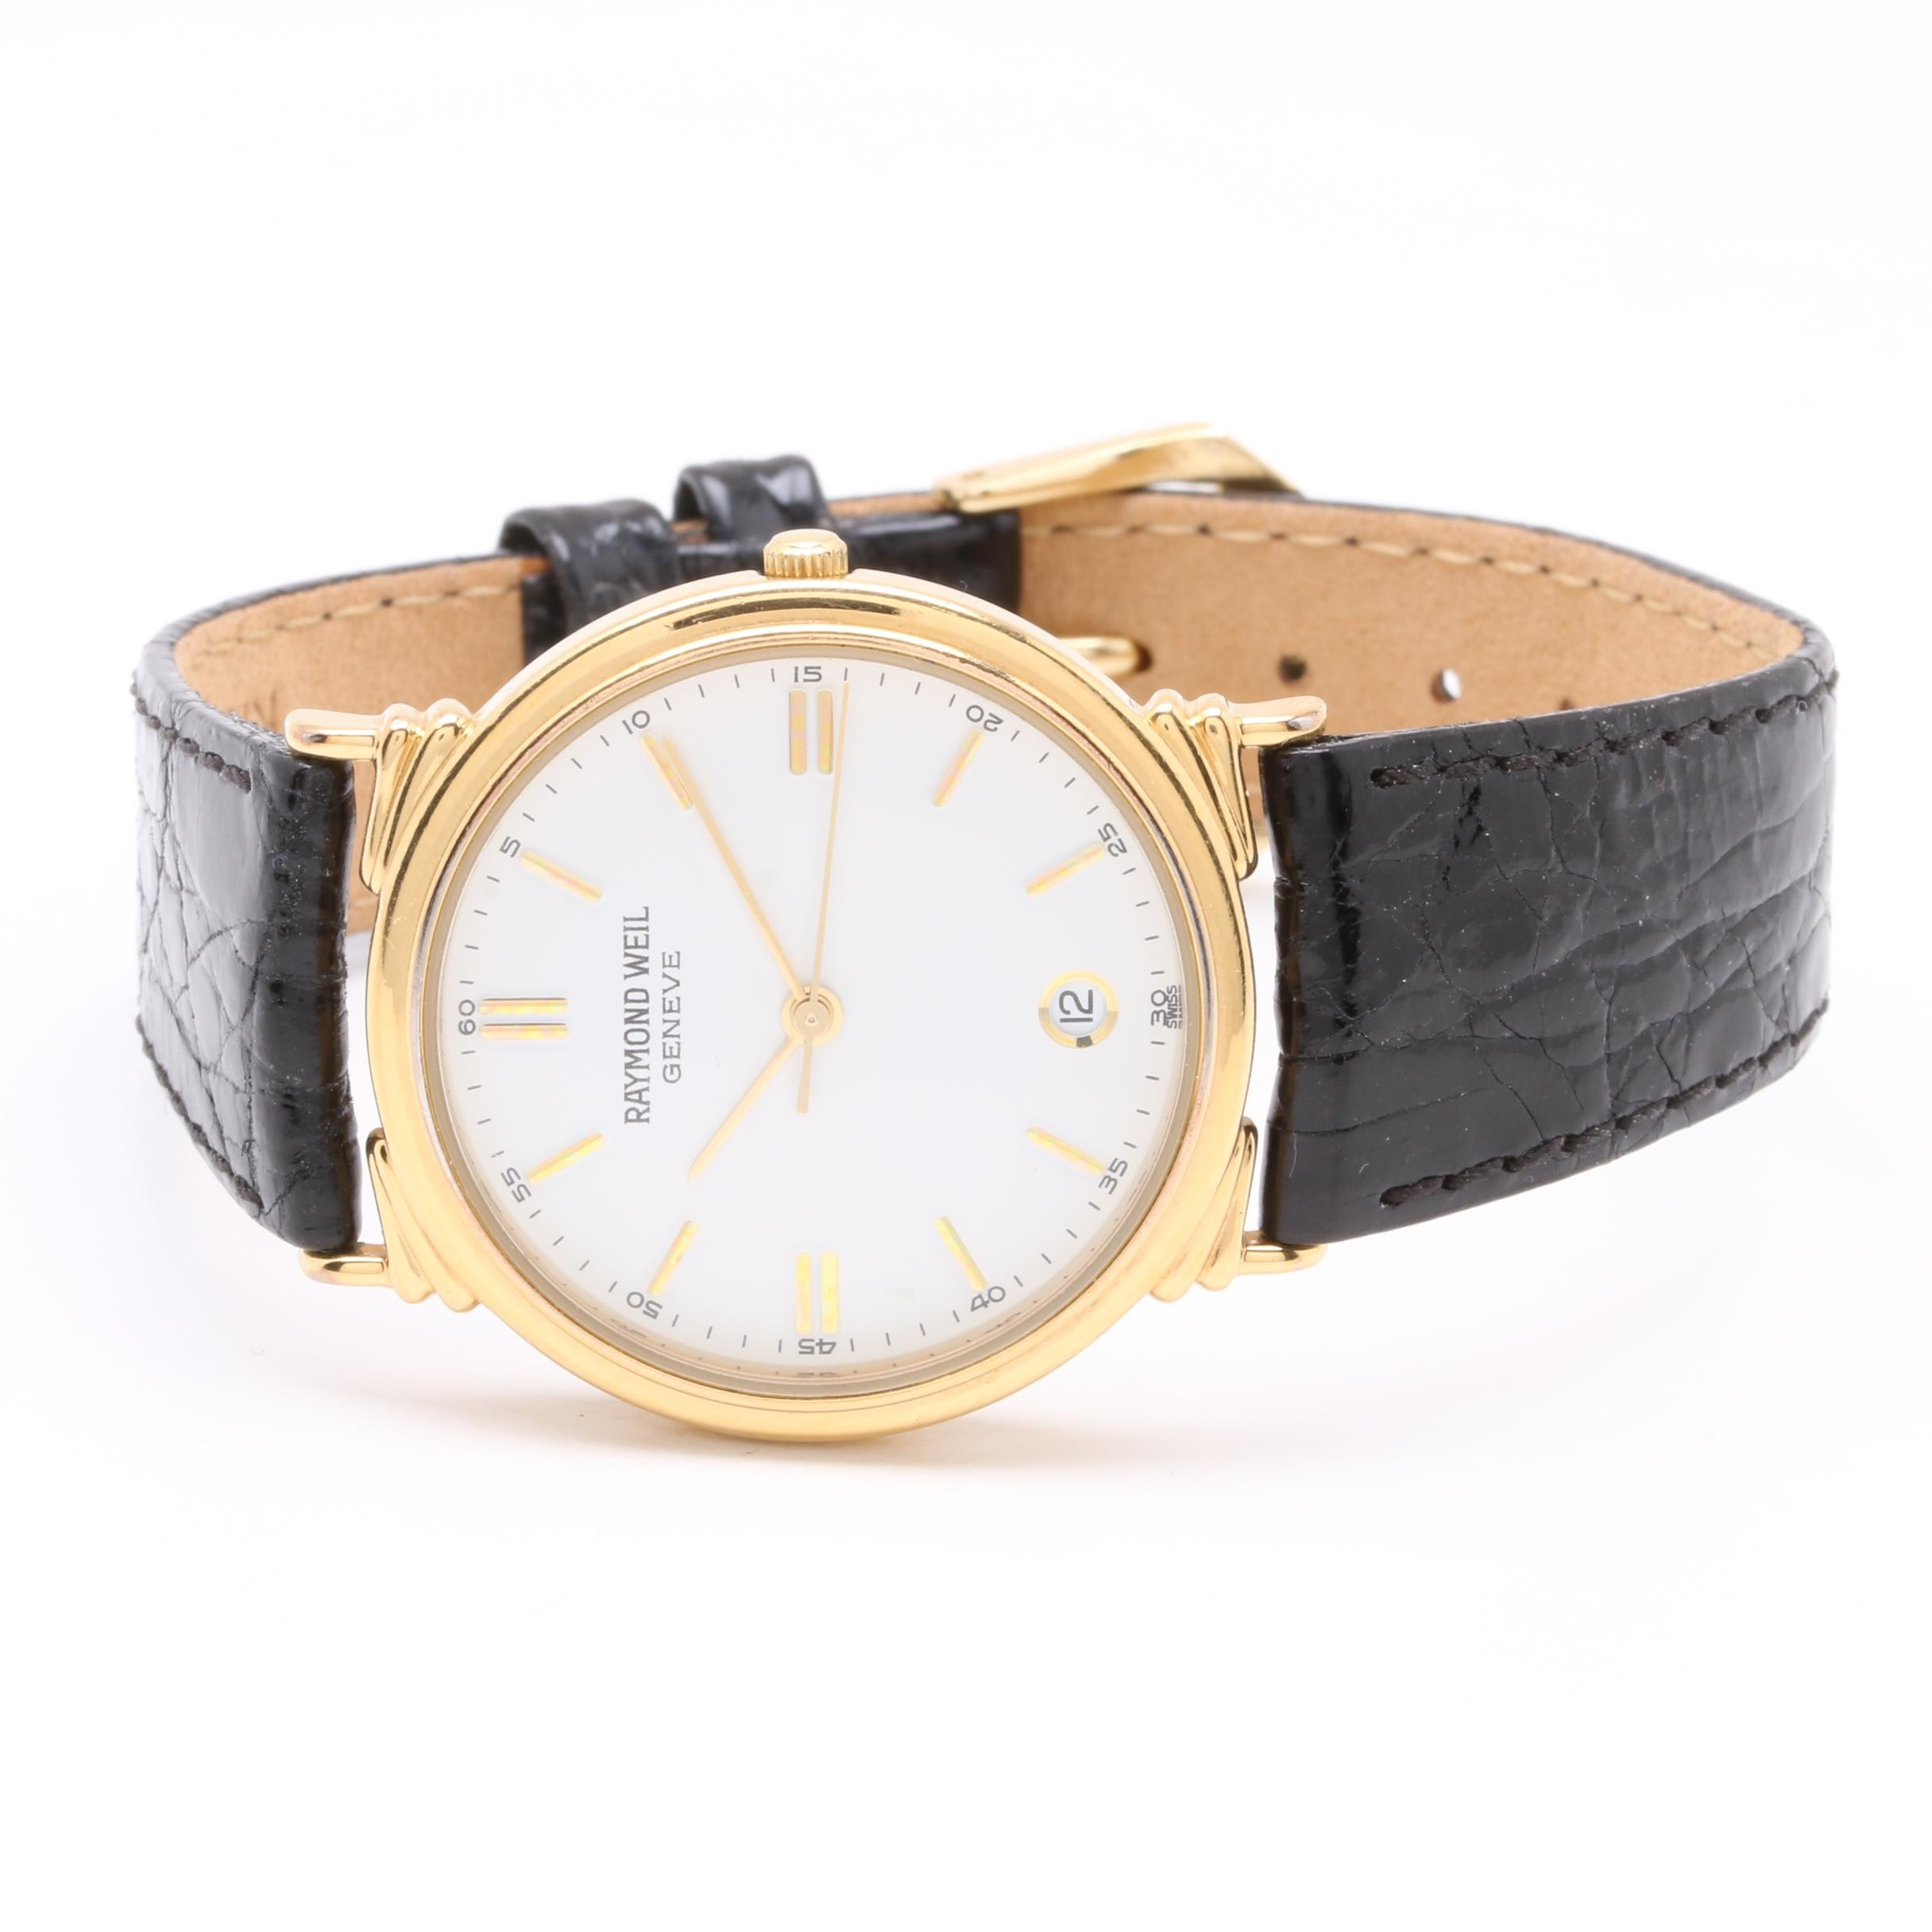 Raymond Weil Gold-Tone and Stainless Steel Leather Wristwatch